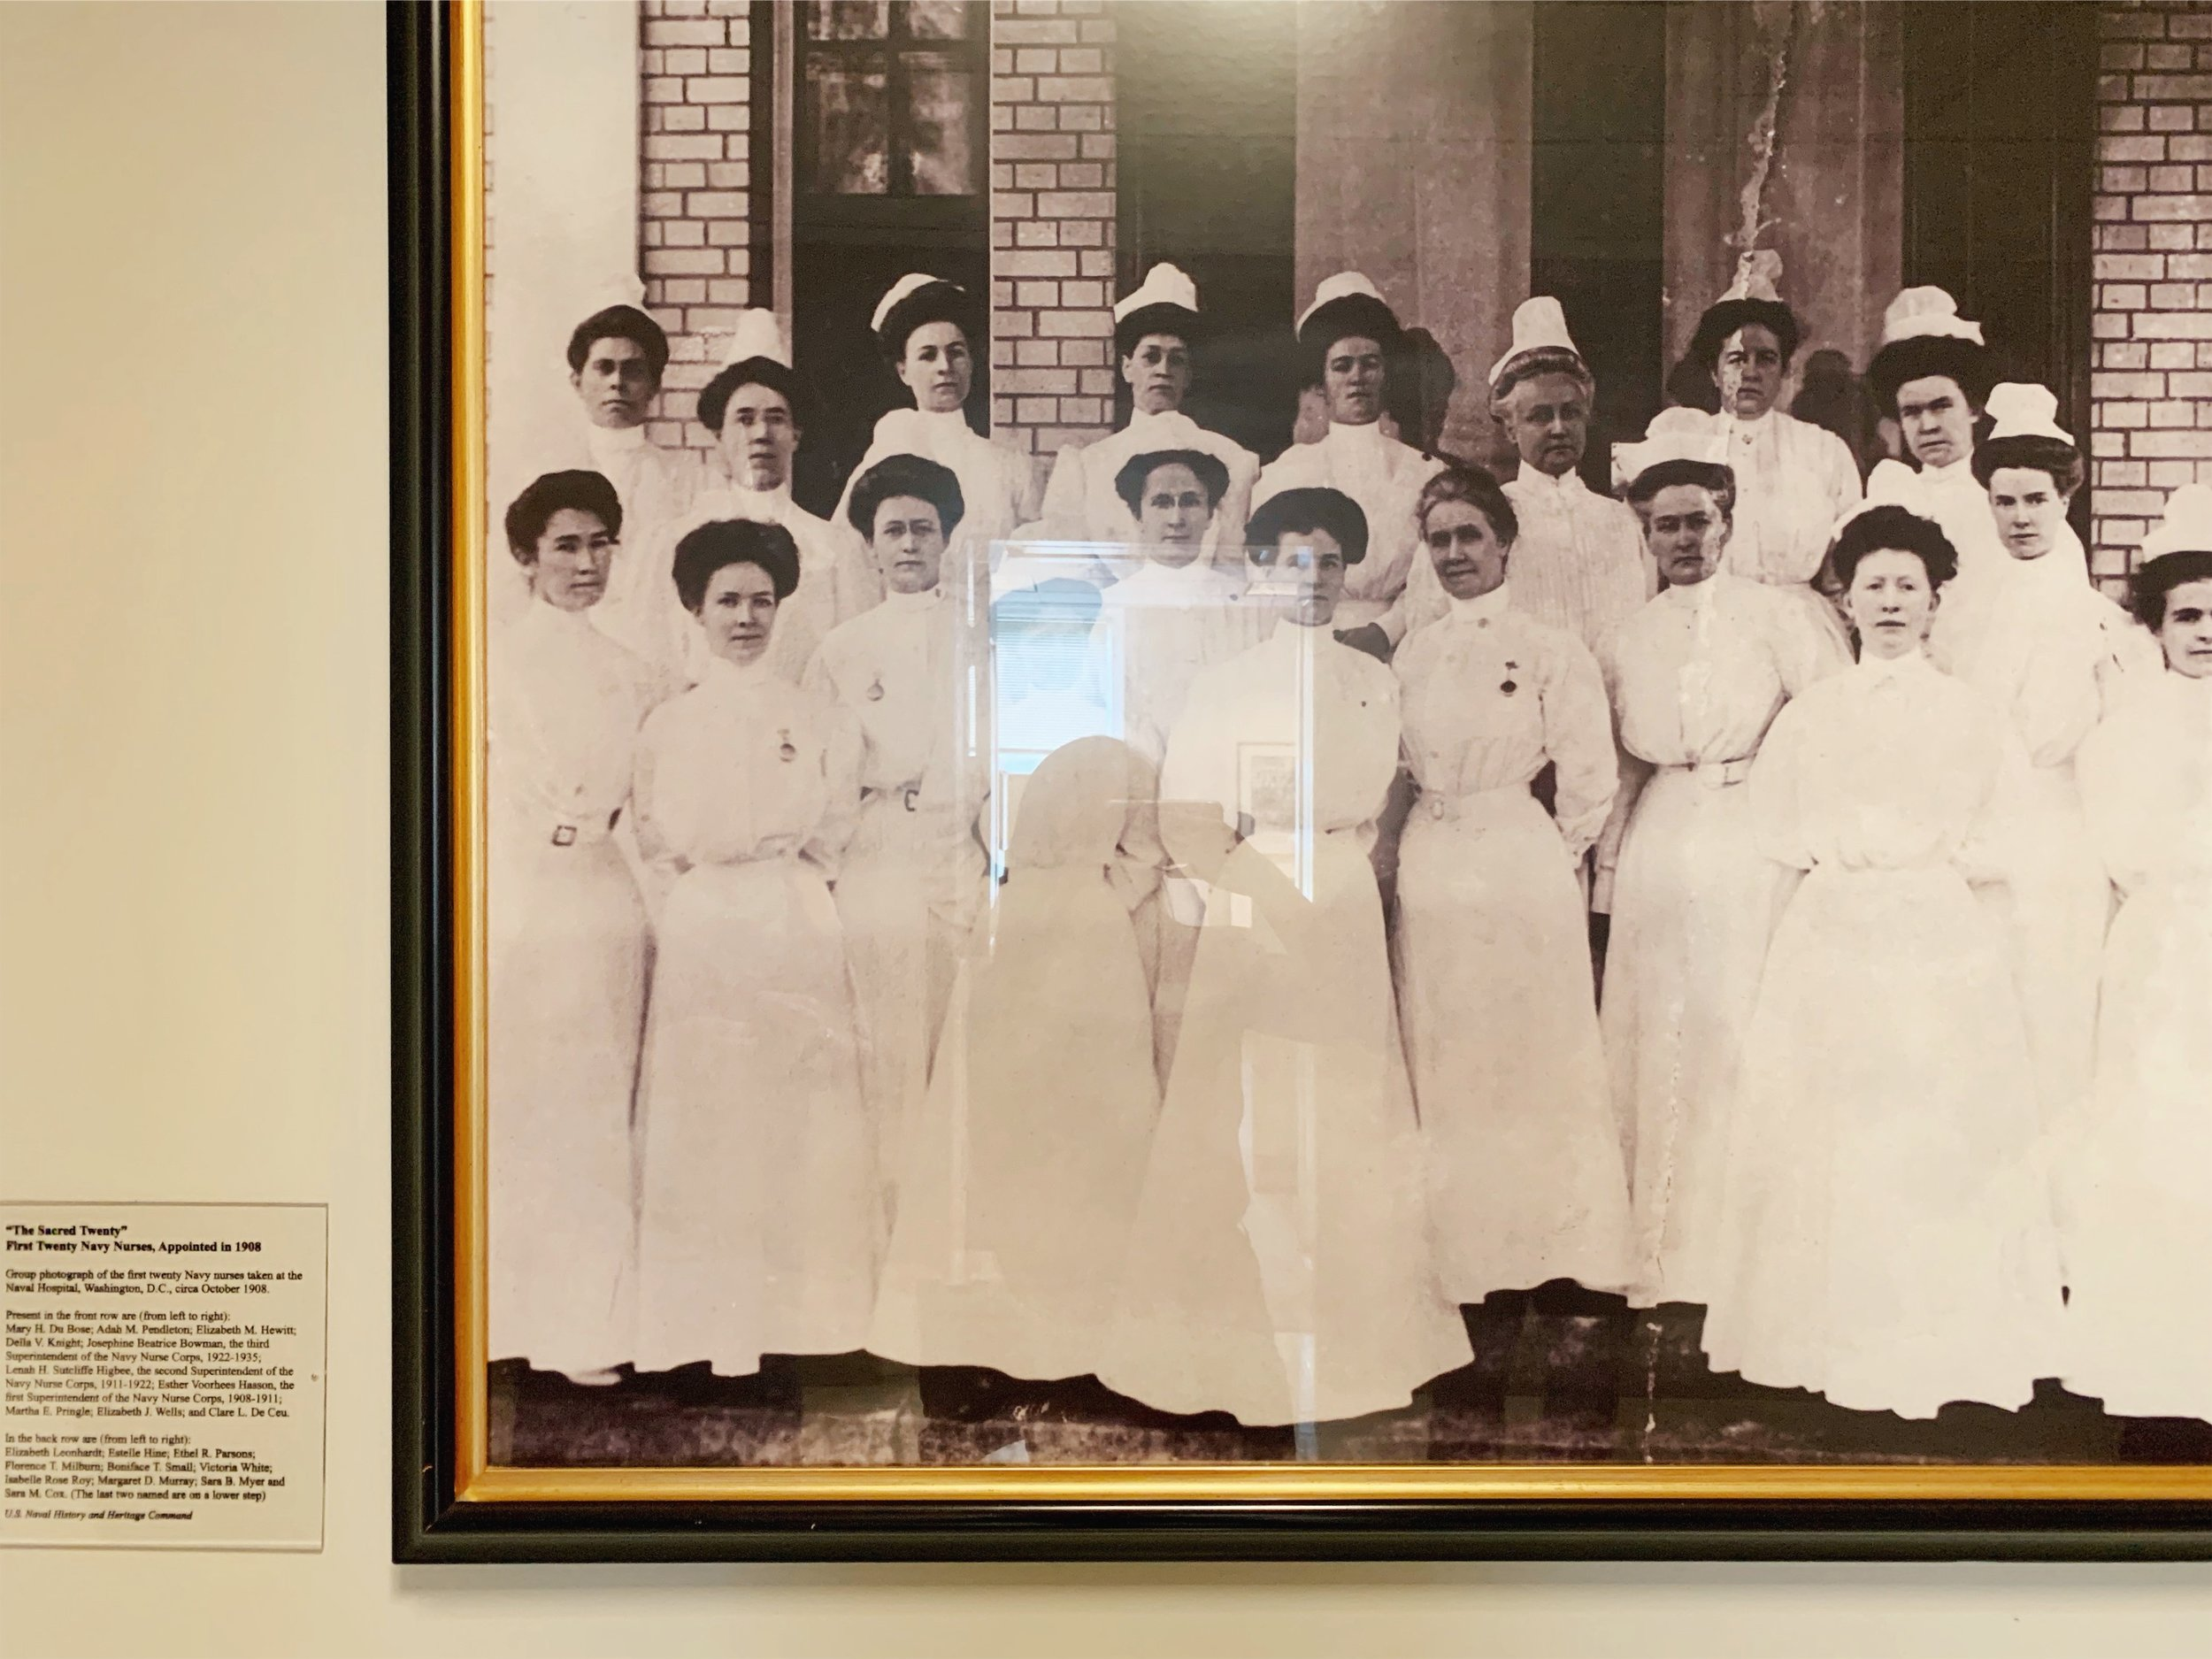 第一組女生來醫院工作 | First group of women worked in the hospital.